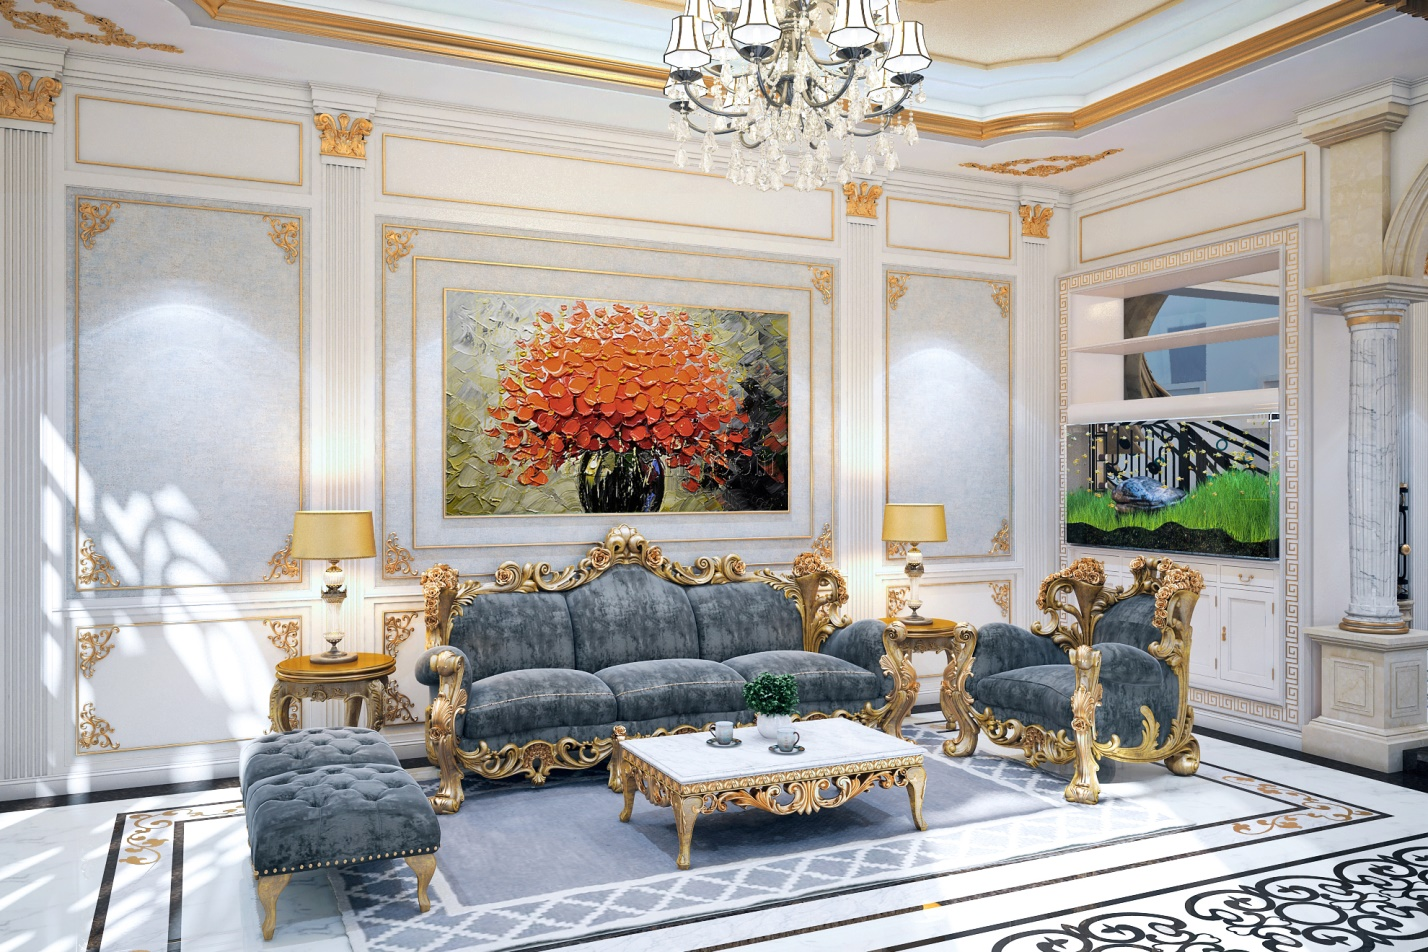 Classical interior style